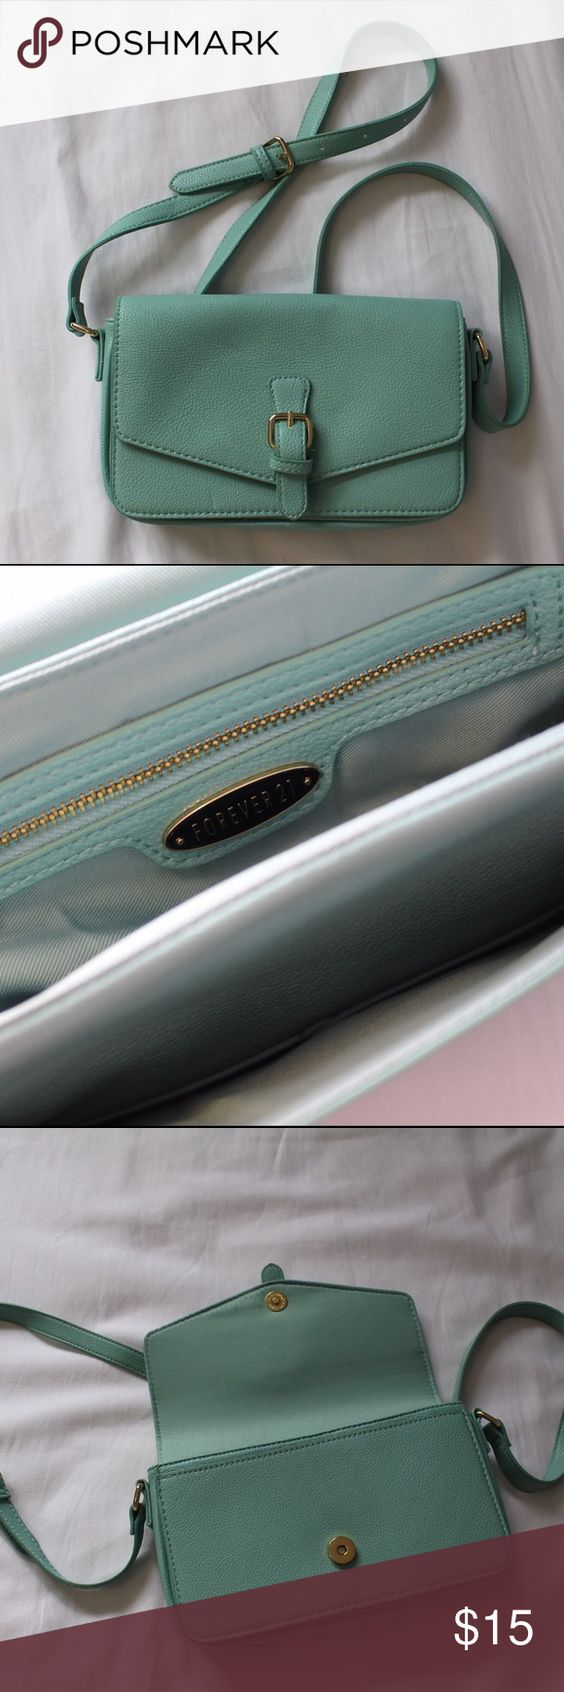 Mint Turquoise Purse Simple, closes with a flap and button. 2 compartments. One extra zipper pocket in the main compartment. Adjustable strap length. Accepting offers! Forever 21 Bags Mini Bags